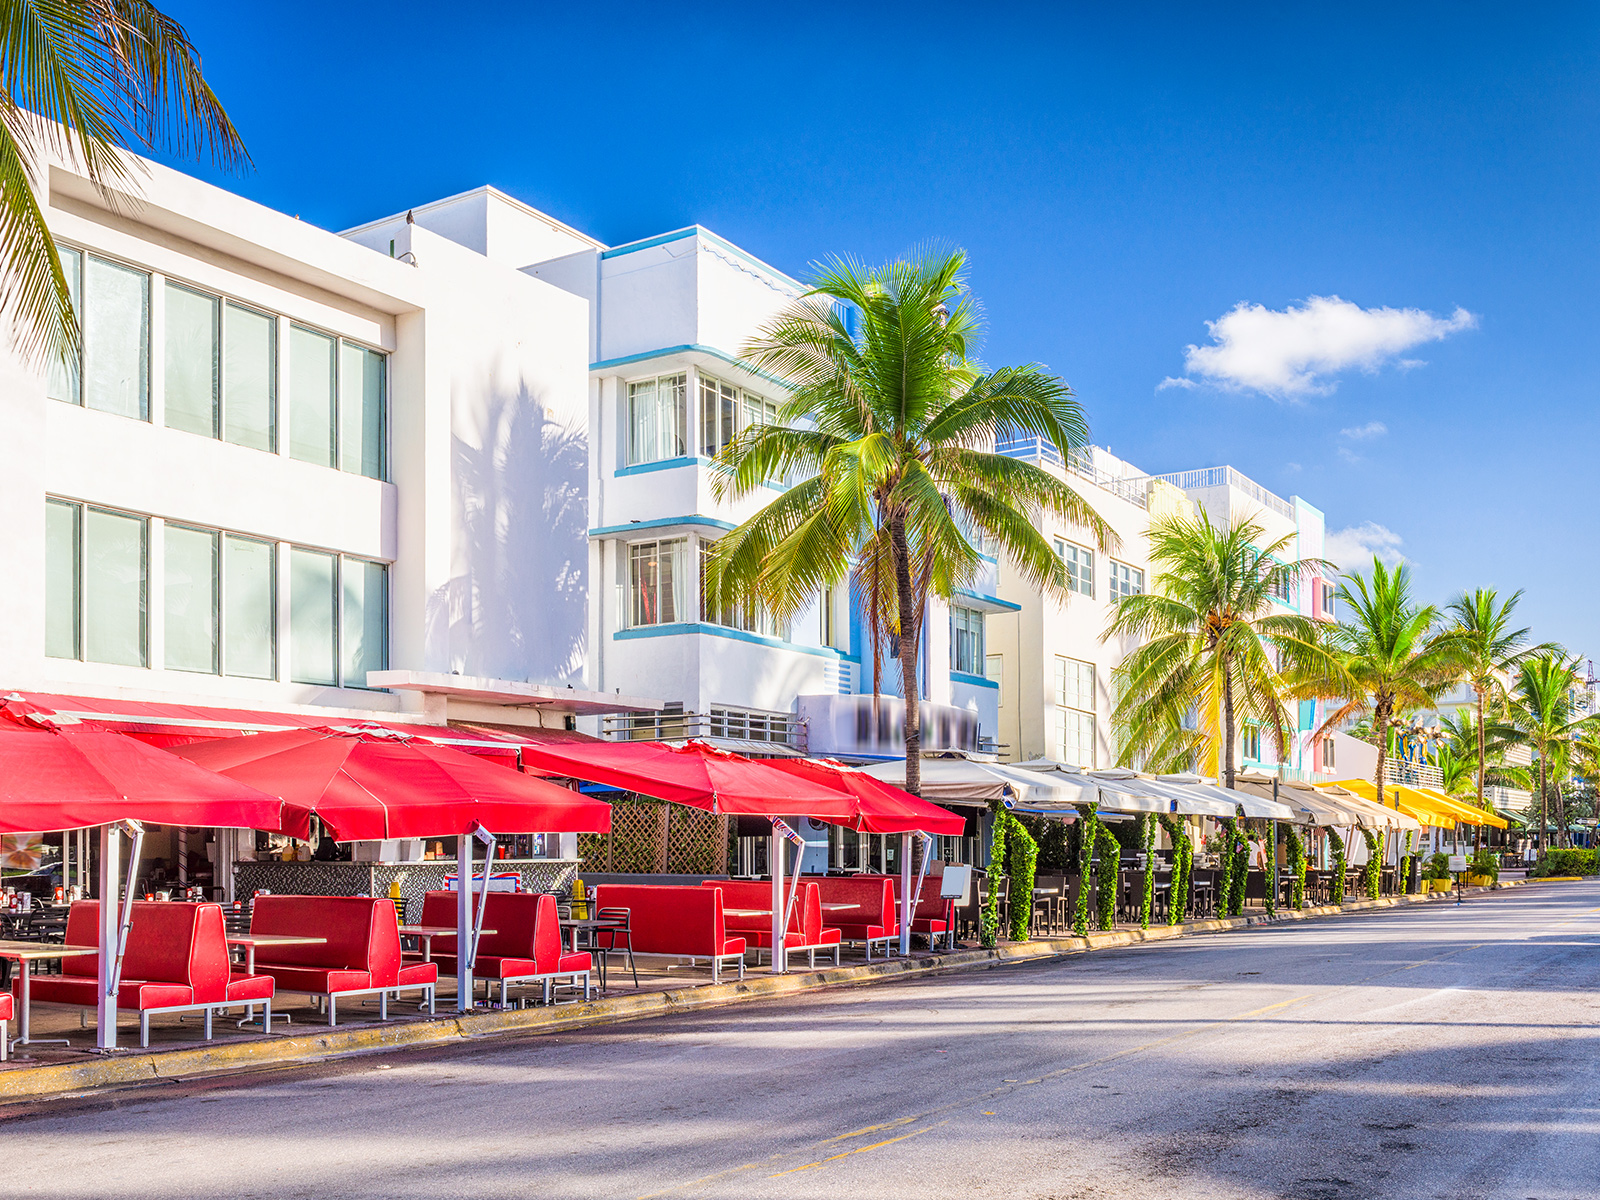 A view of multiple buildings in Miami Beach,the buildings are colorful, there is sitting and palm trees outside